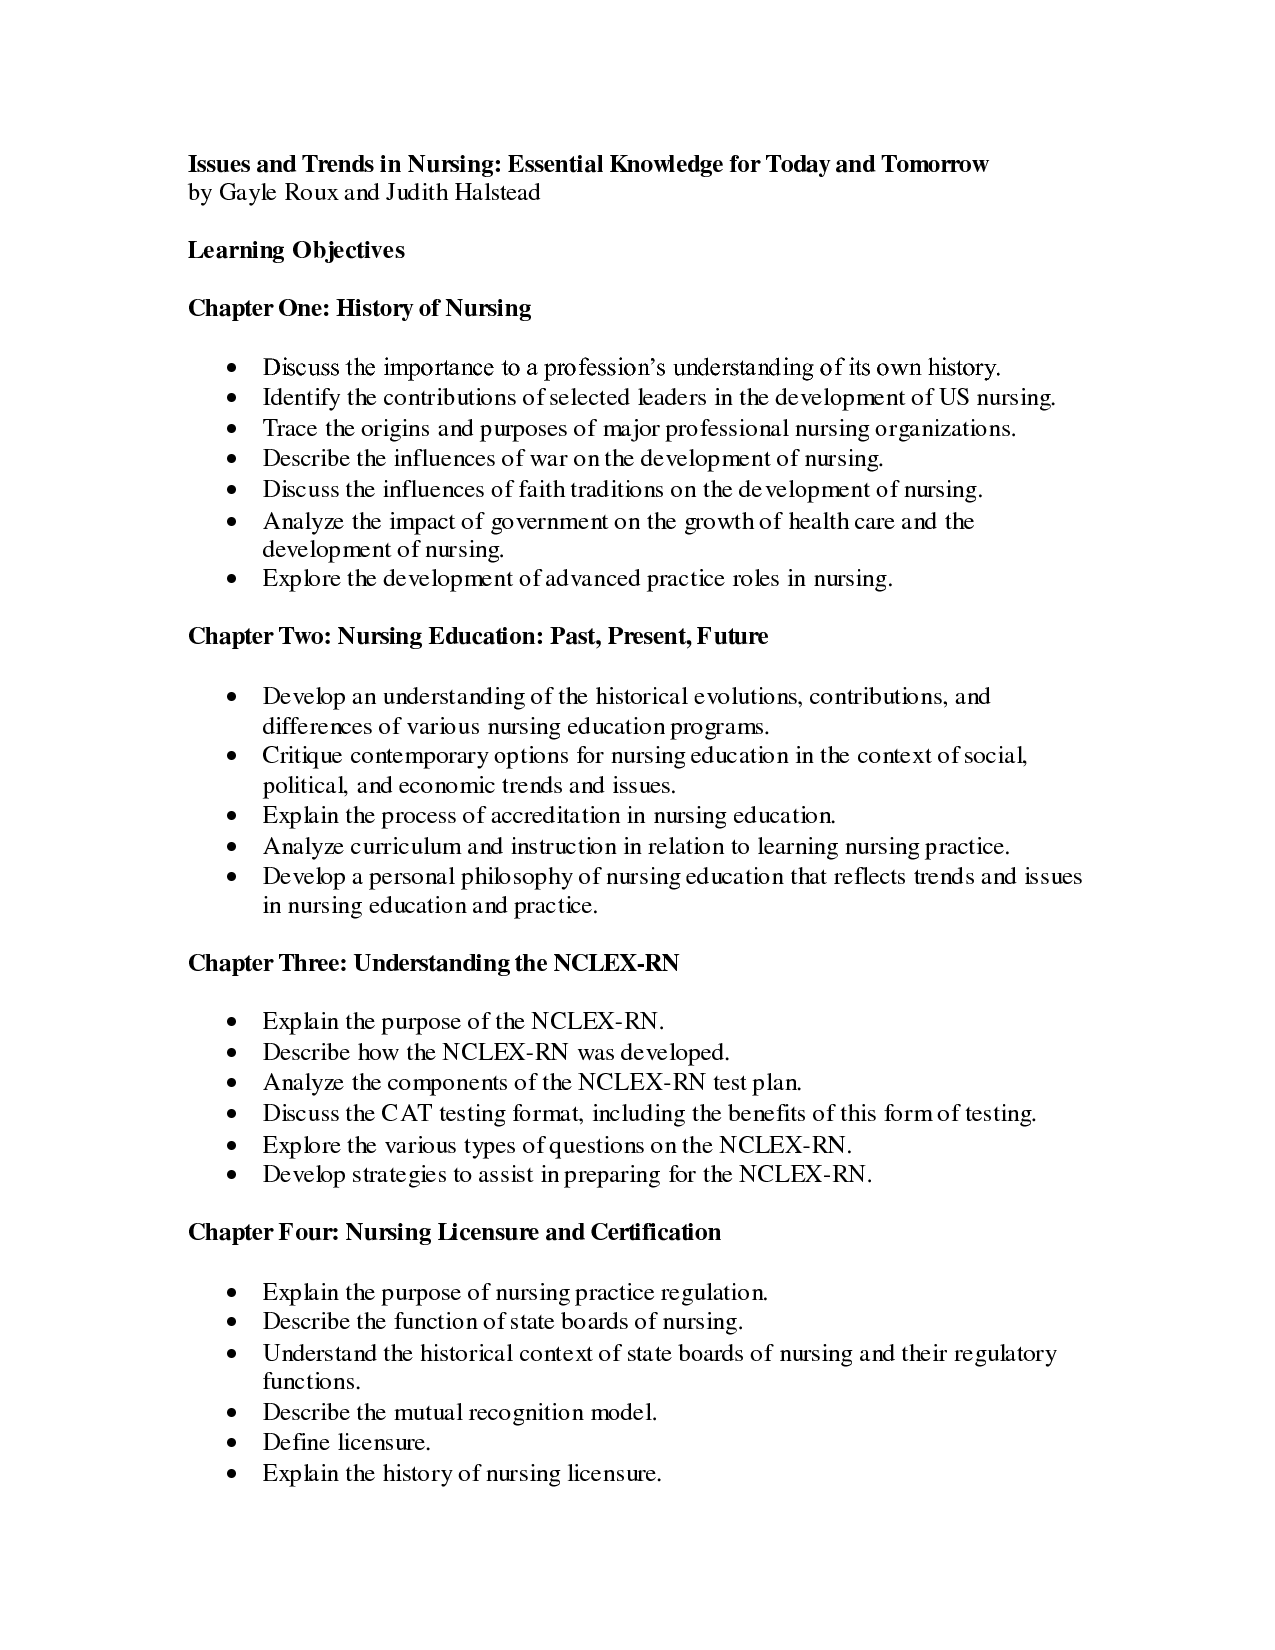 002 Educational Research Paper Magnificent Example Special Education Examples Abstract Sample Management Full